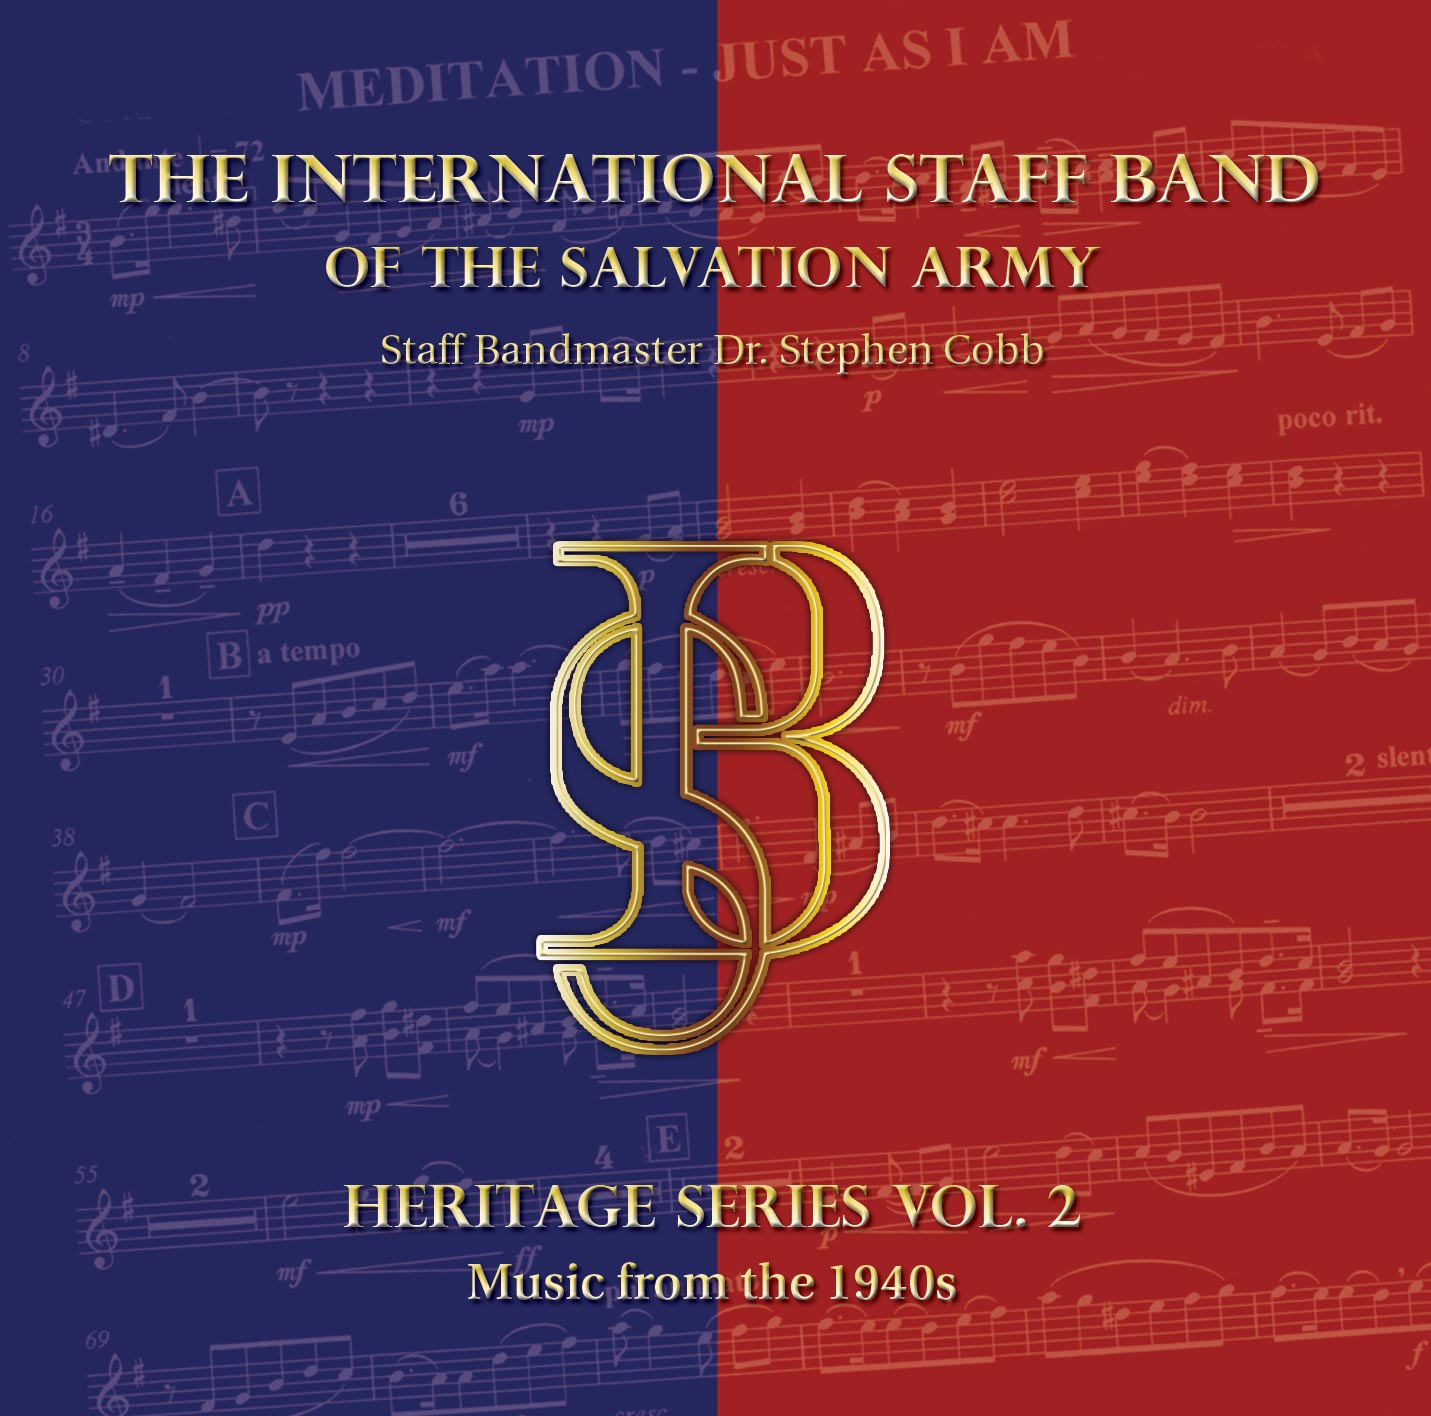 ISB Heritage Series Vol. 2 - Music from the 1940s - CD